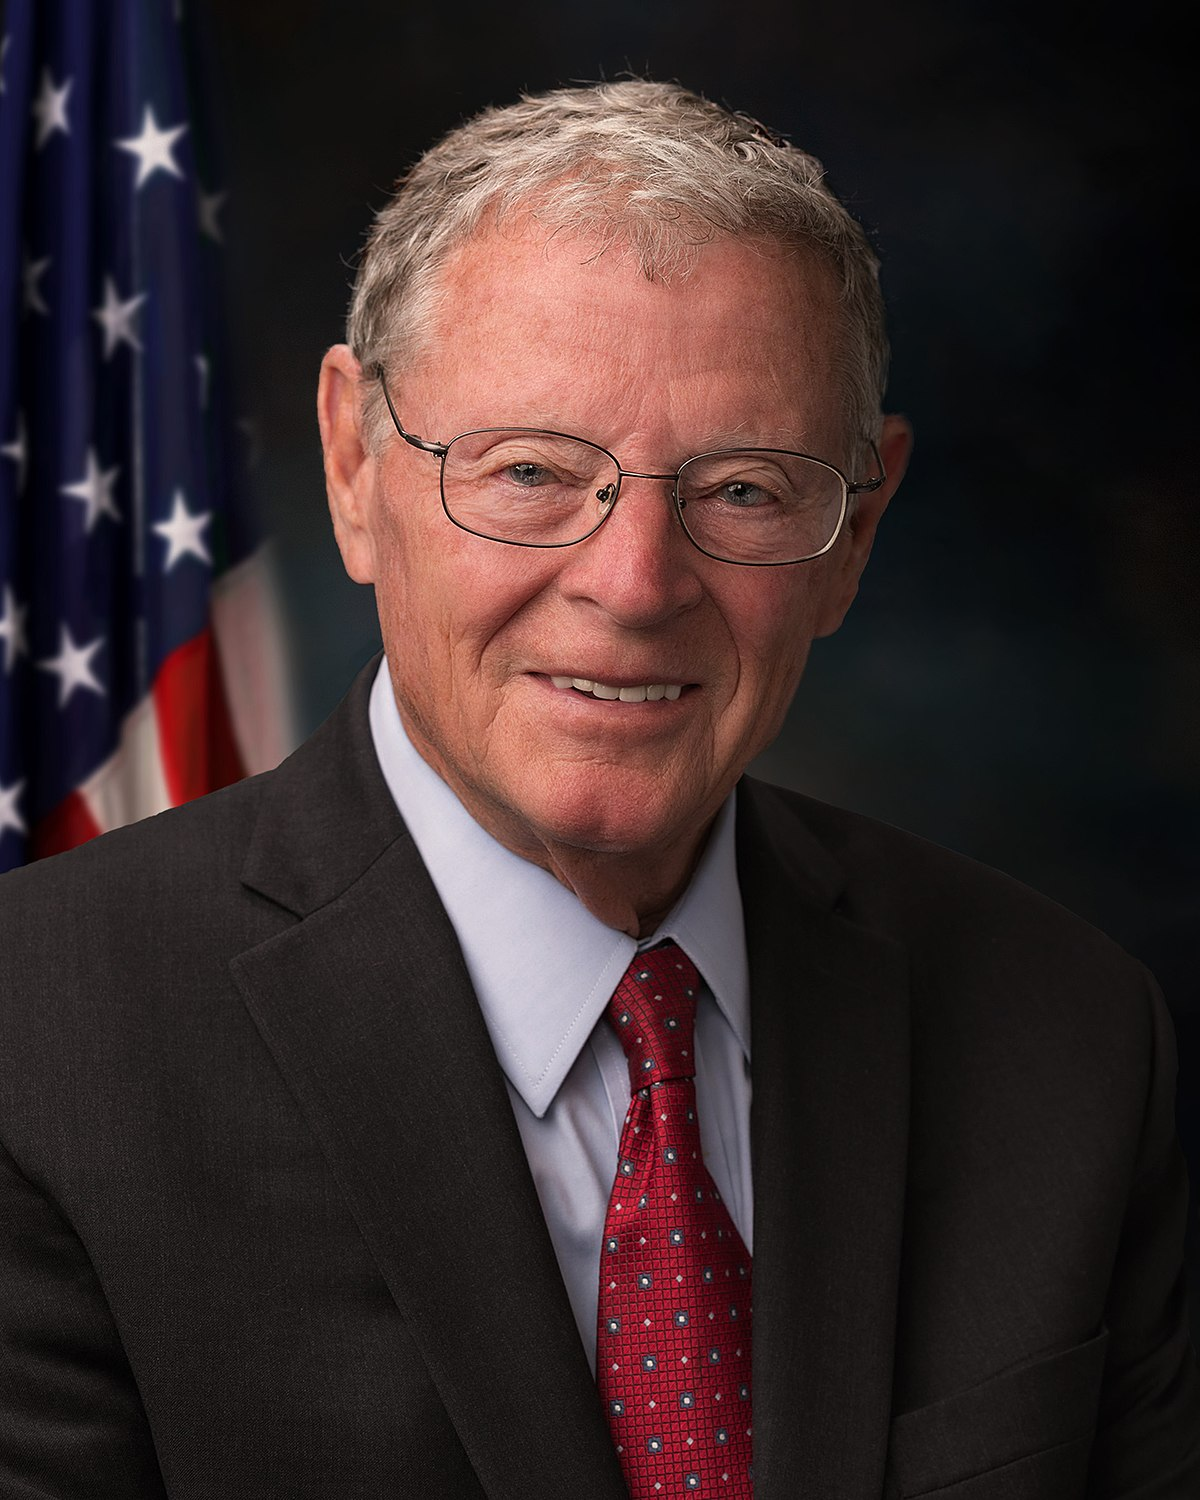 jim inhofe wikipediaEducation Gt See More Electrical Wiring Residential By Ray C Mullin #5